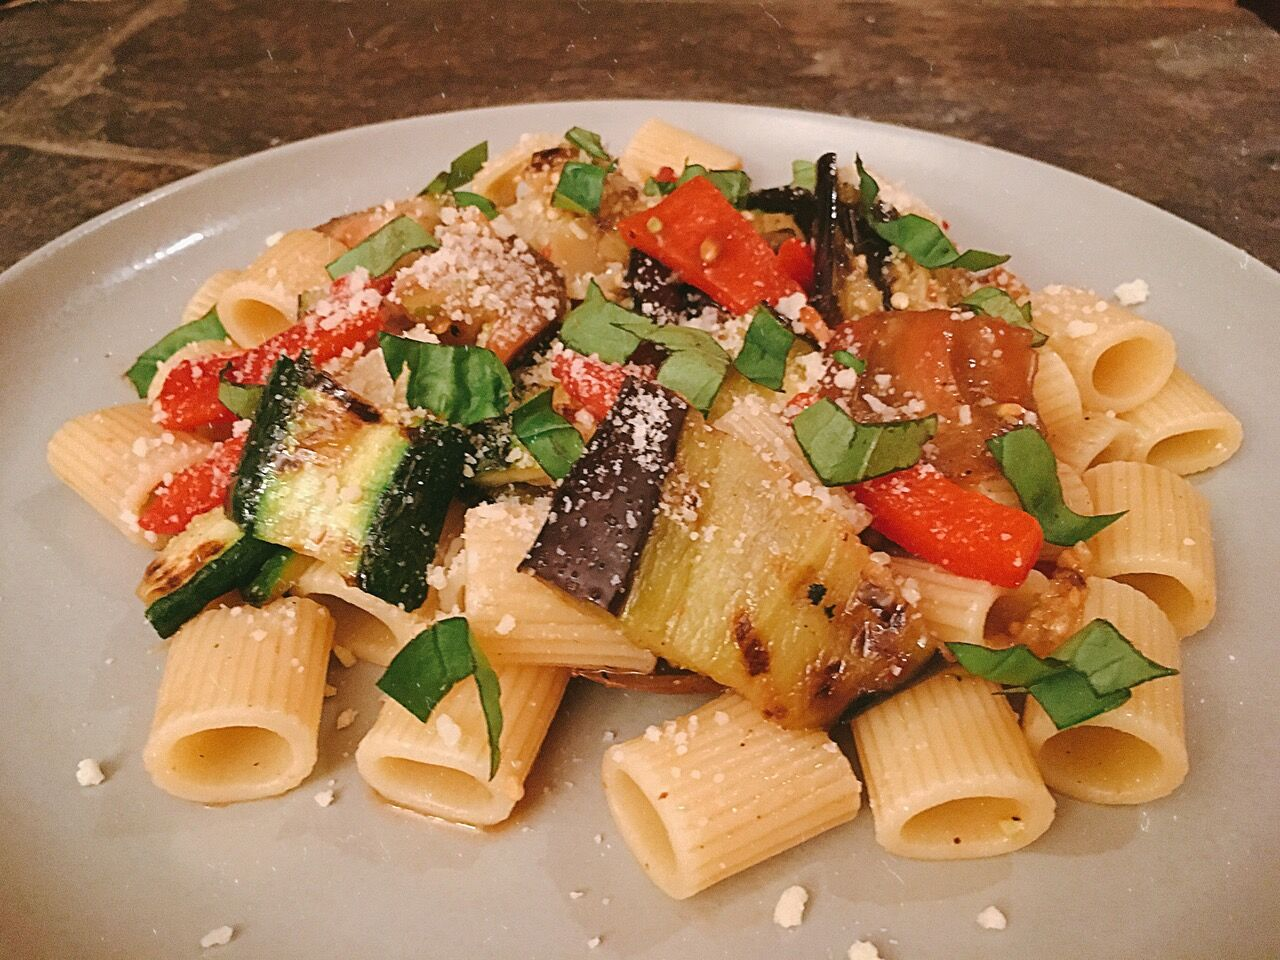 Grilled Vegetable Pasta on Plate